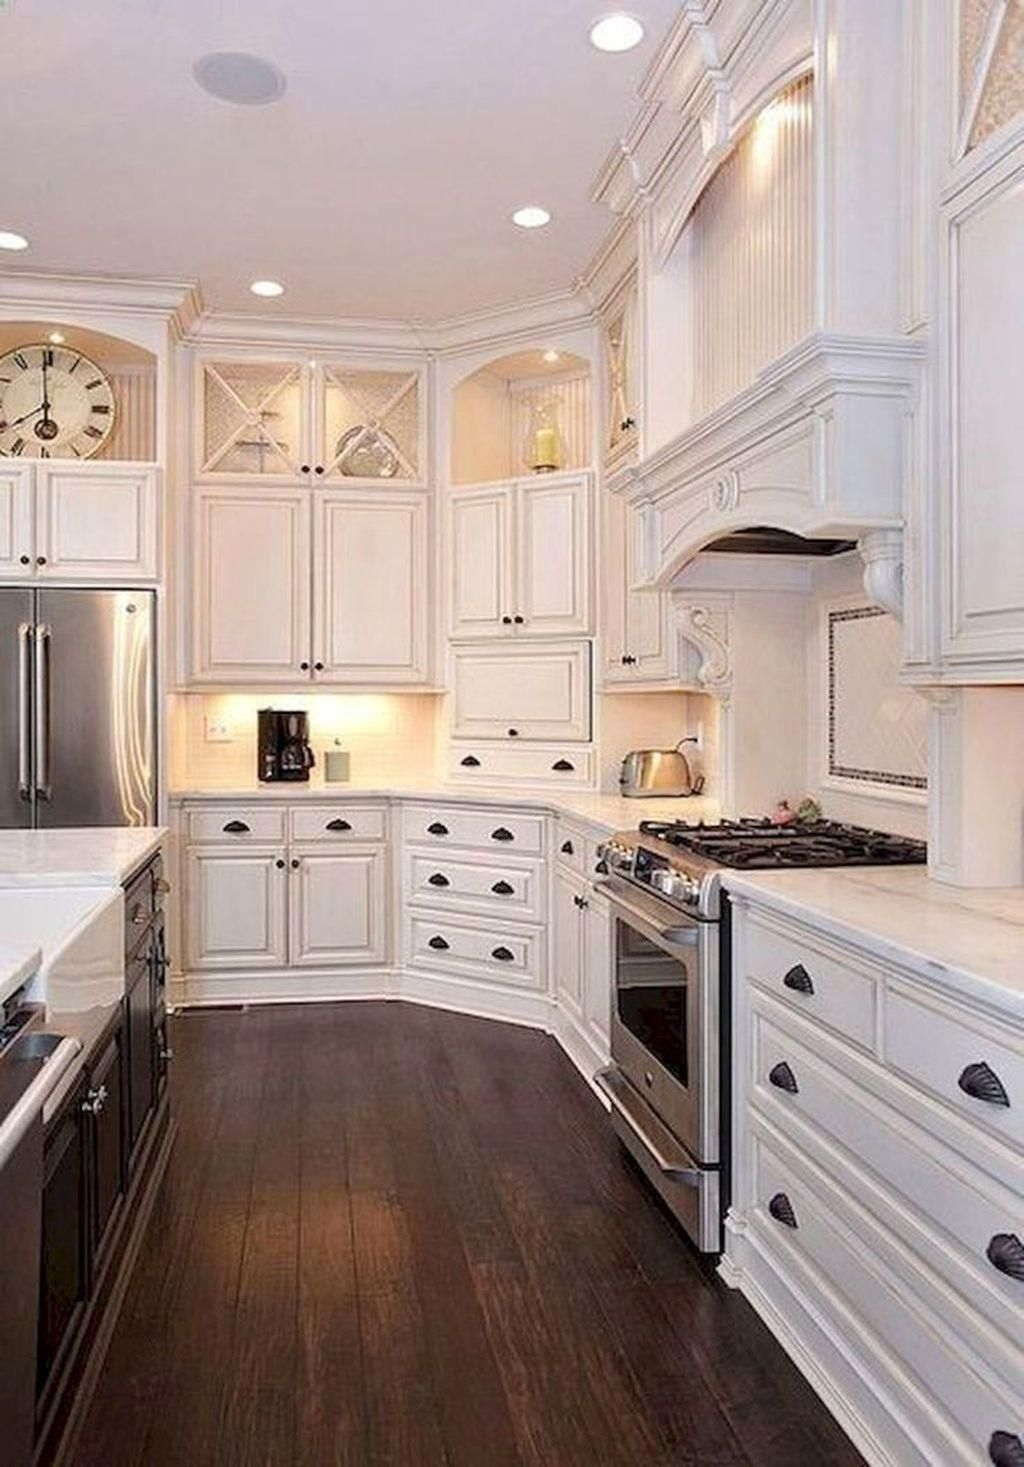 45 Fabulous Kitchen Cabinet Design For Apartment in 2020 ...